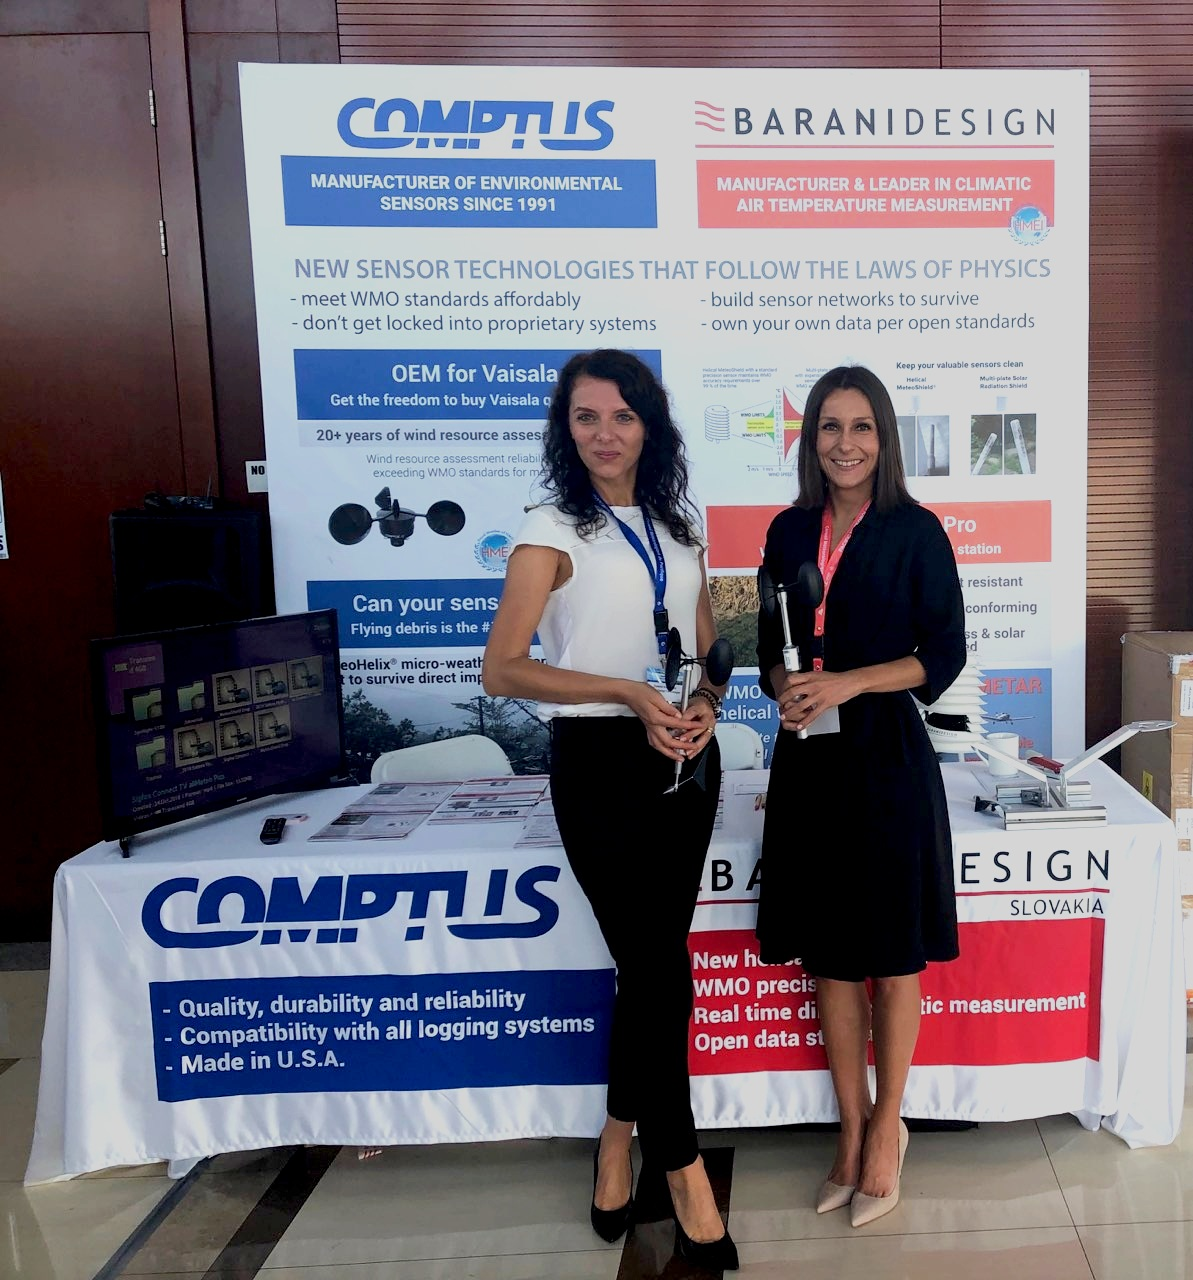 BARANI DESIGN Technologies team sharing a stand with  COMPTUS  of USA, a BARANI DESIGN distributor.